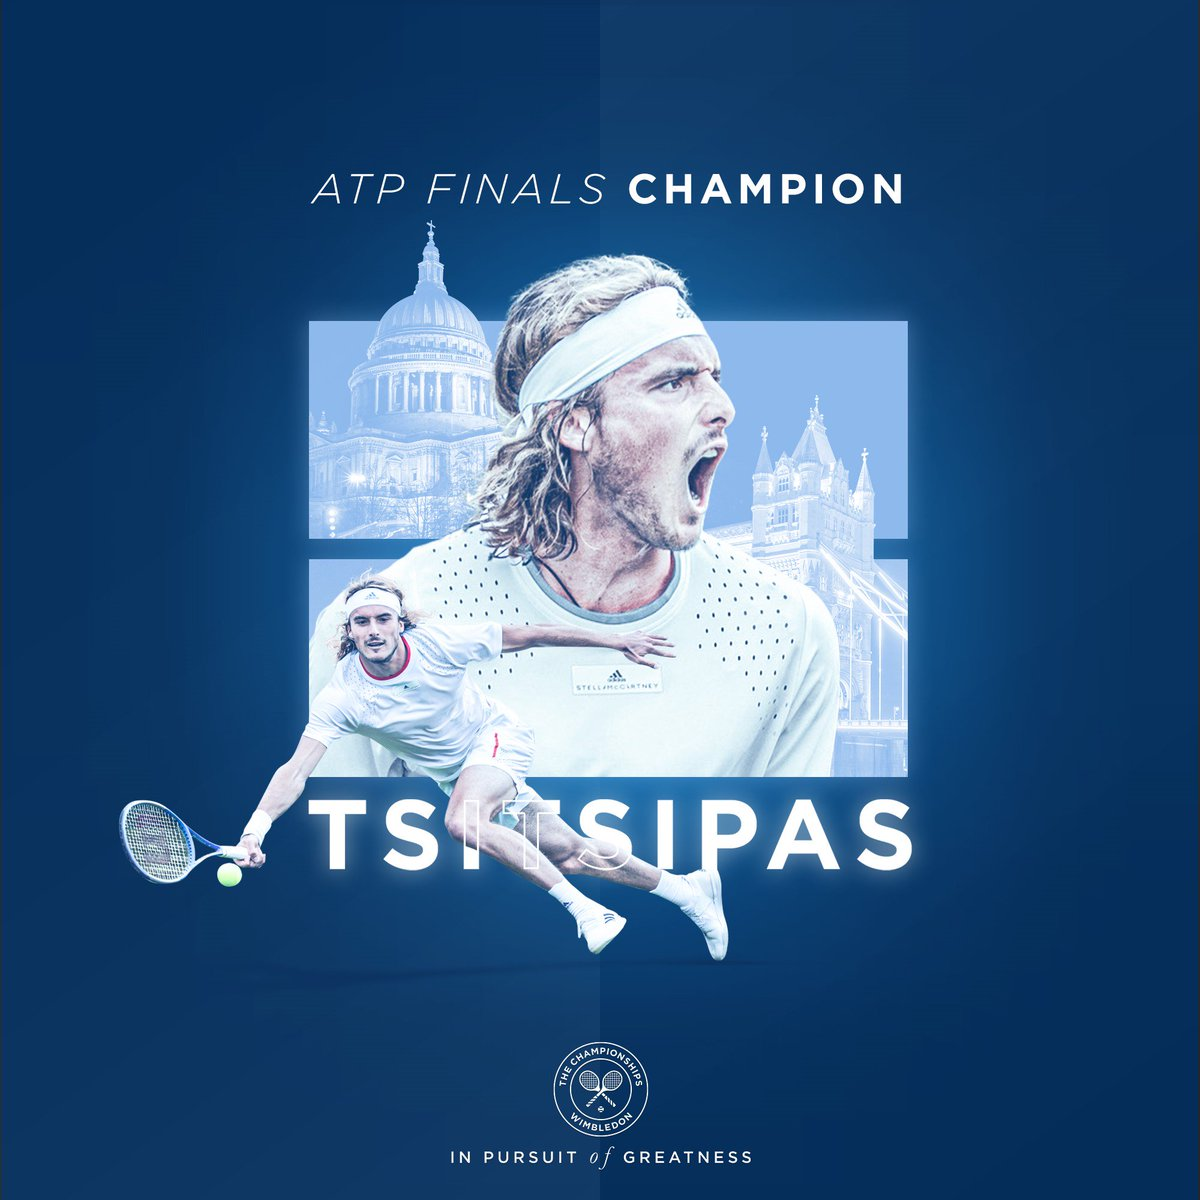 Greece has a new hero   @StefTsitsipas is crowned as the #NittoATPFinals champion in London  <br>http://pic.twitter.com/w5gOsnlCsr